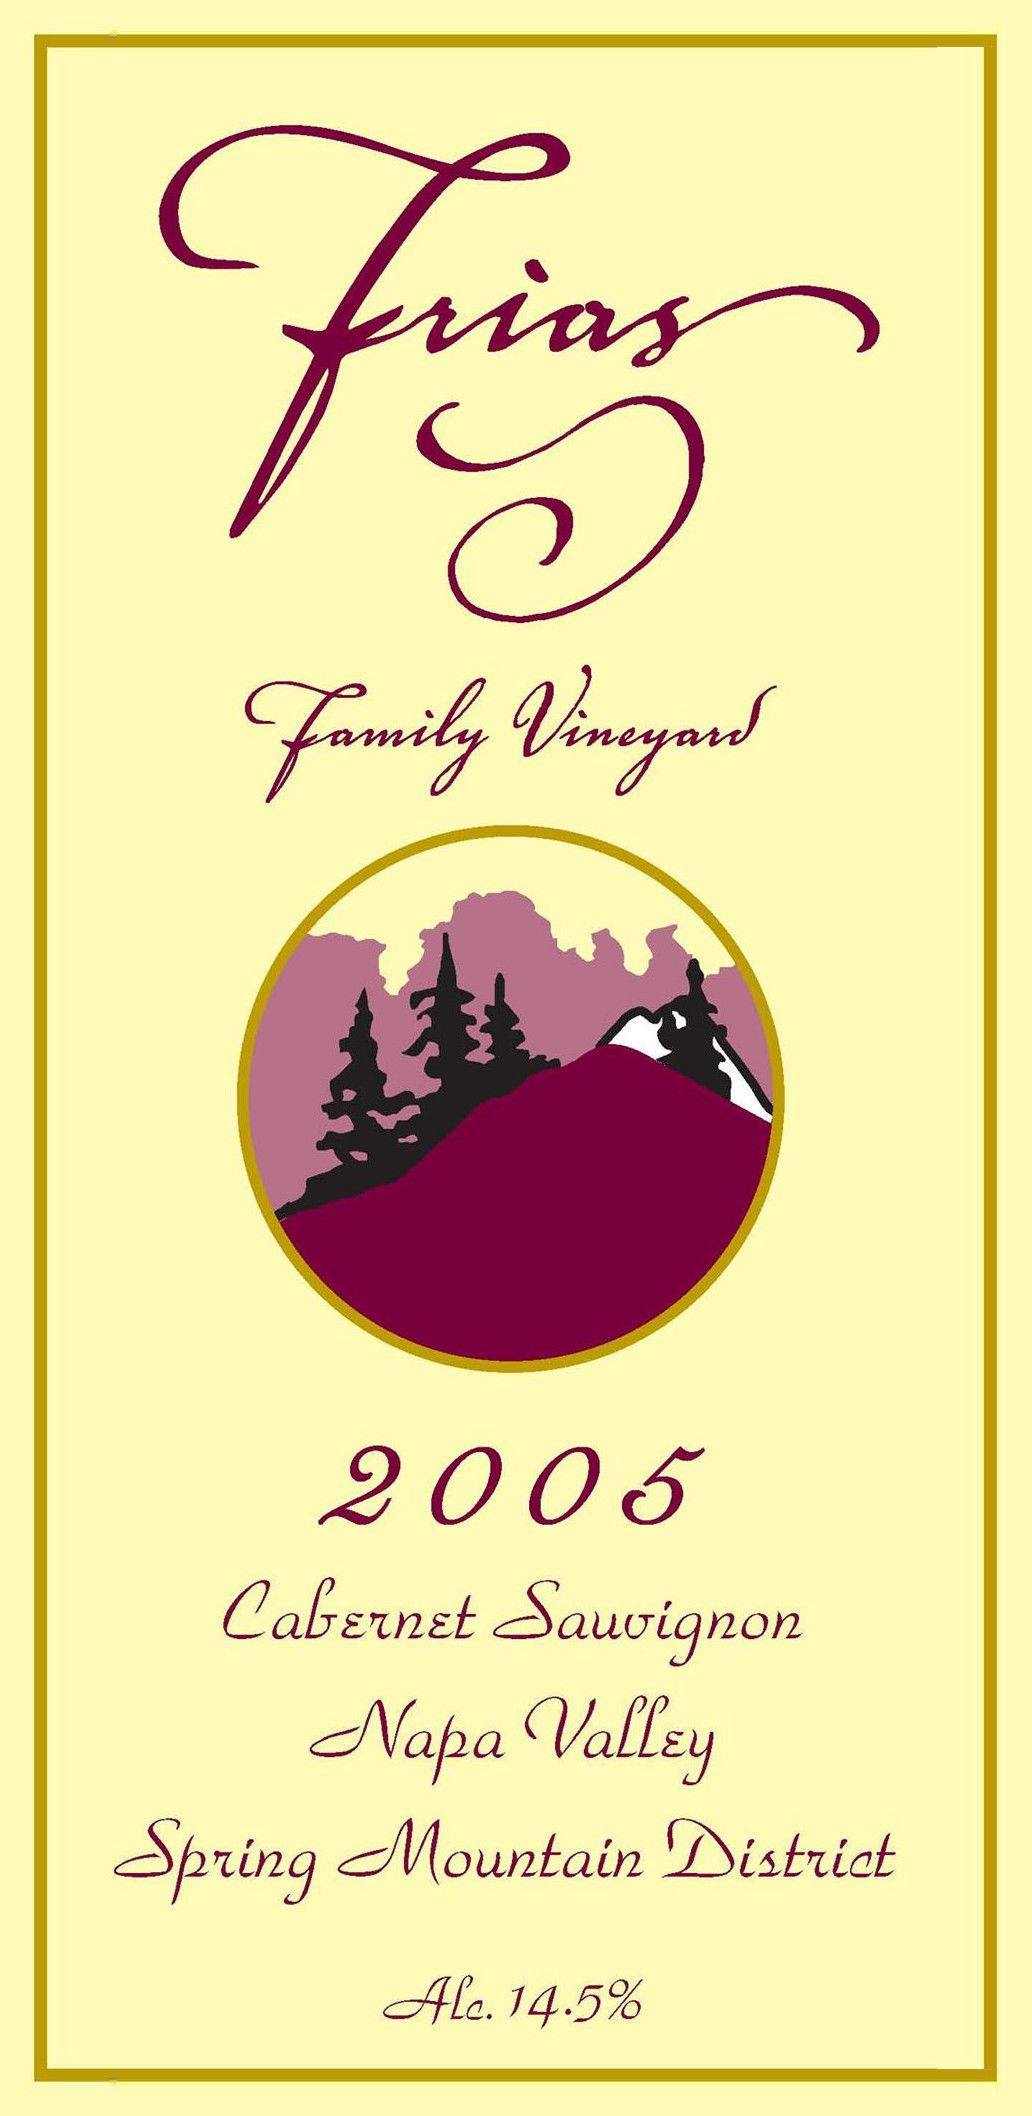 Frias Family Vineyard Spring Mountain District Cabernet Sauvignon 2005 Front Label